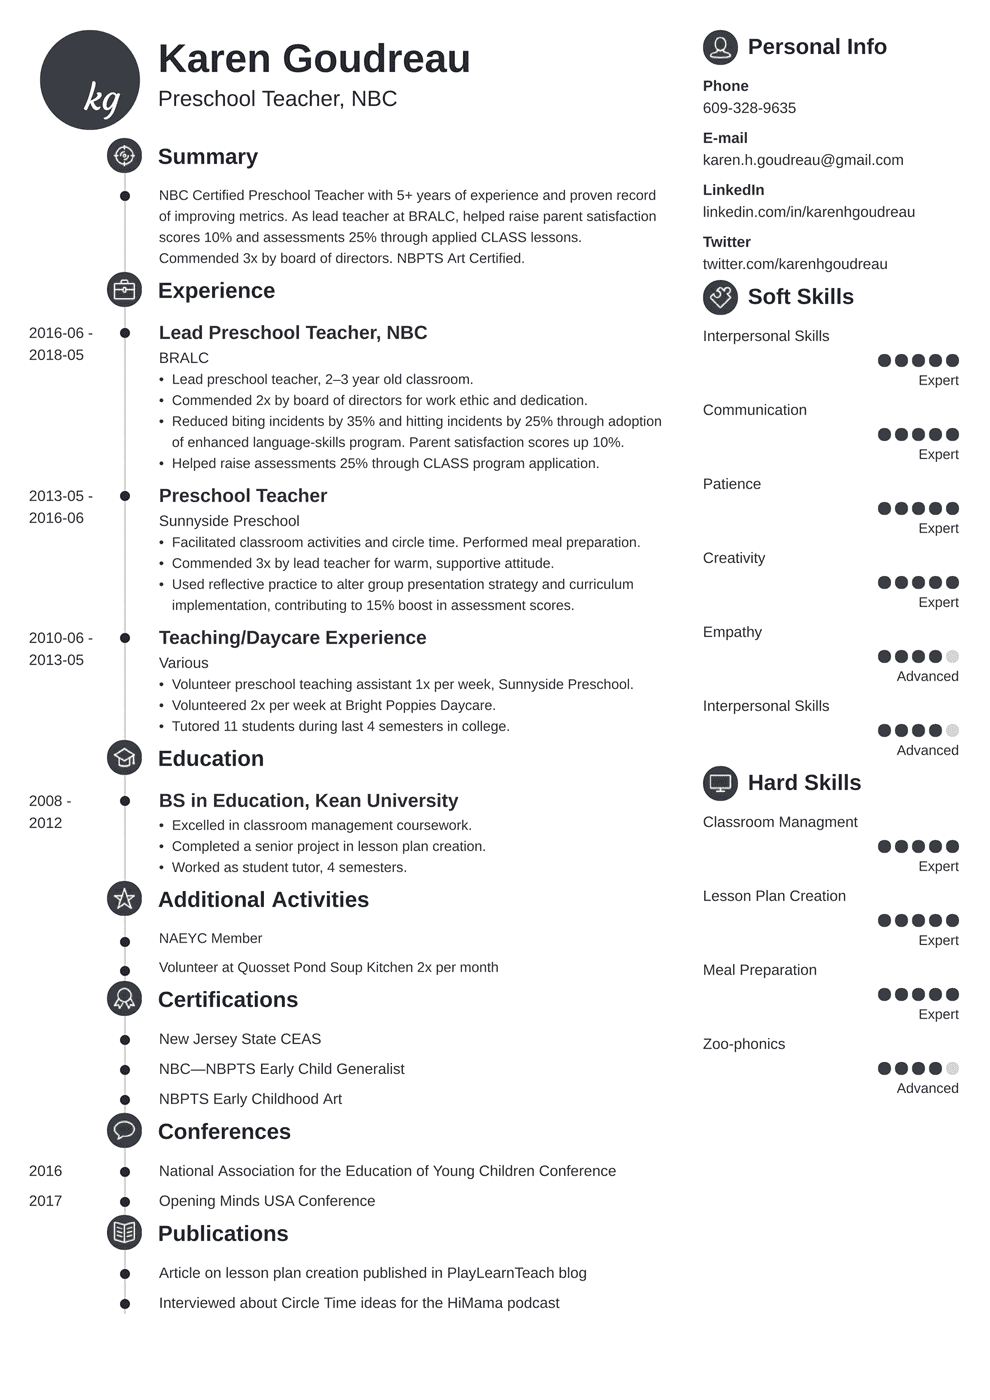 Preschool Teacher Resume: Samples and Writing Guide [+20 Examples]